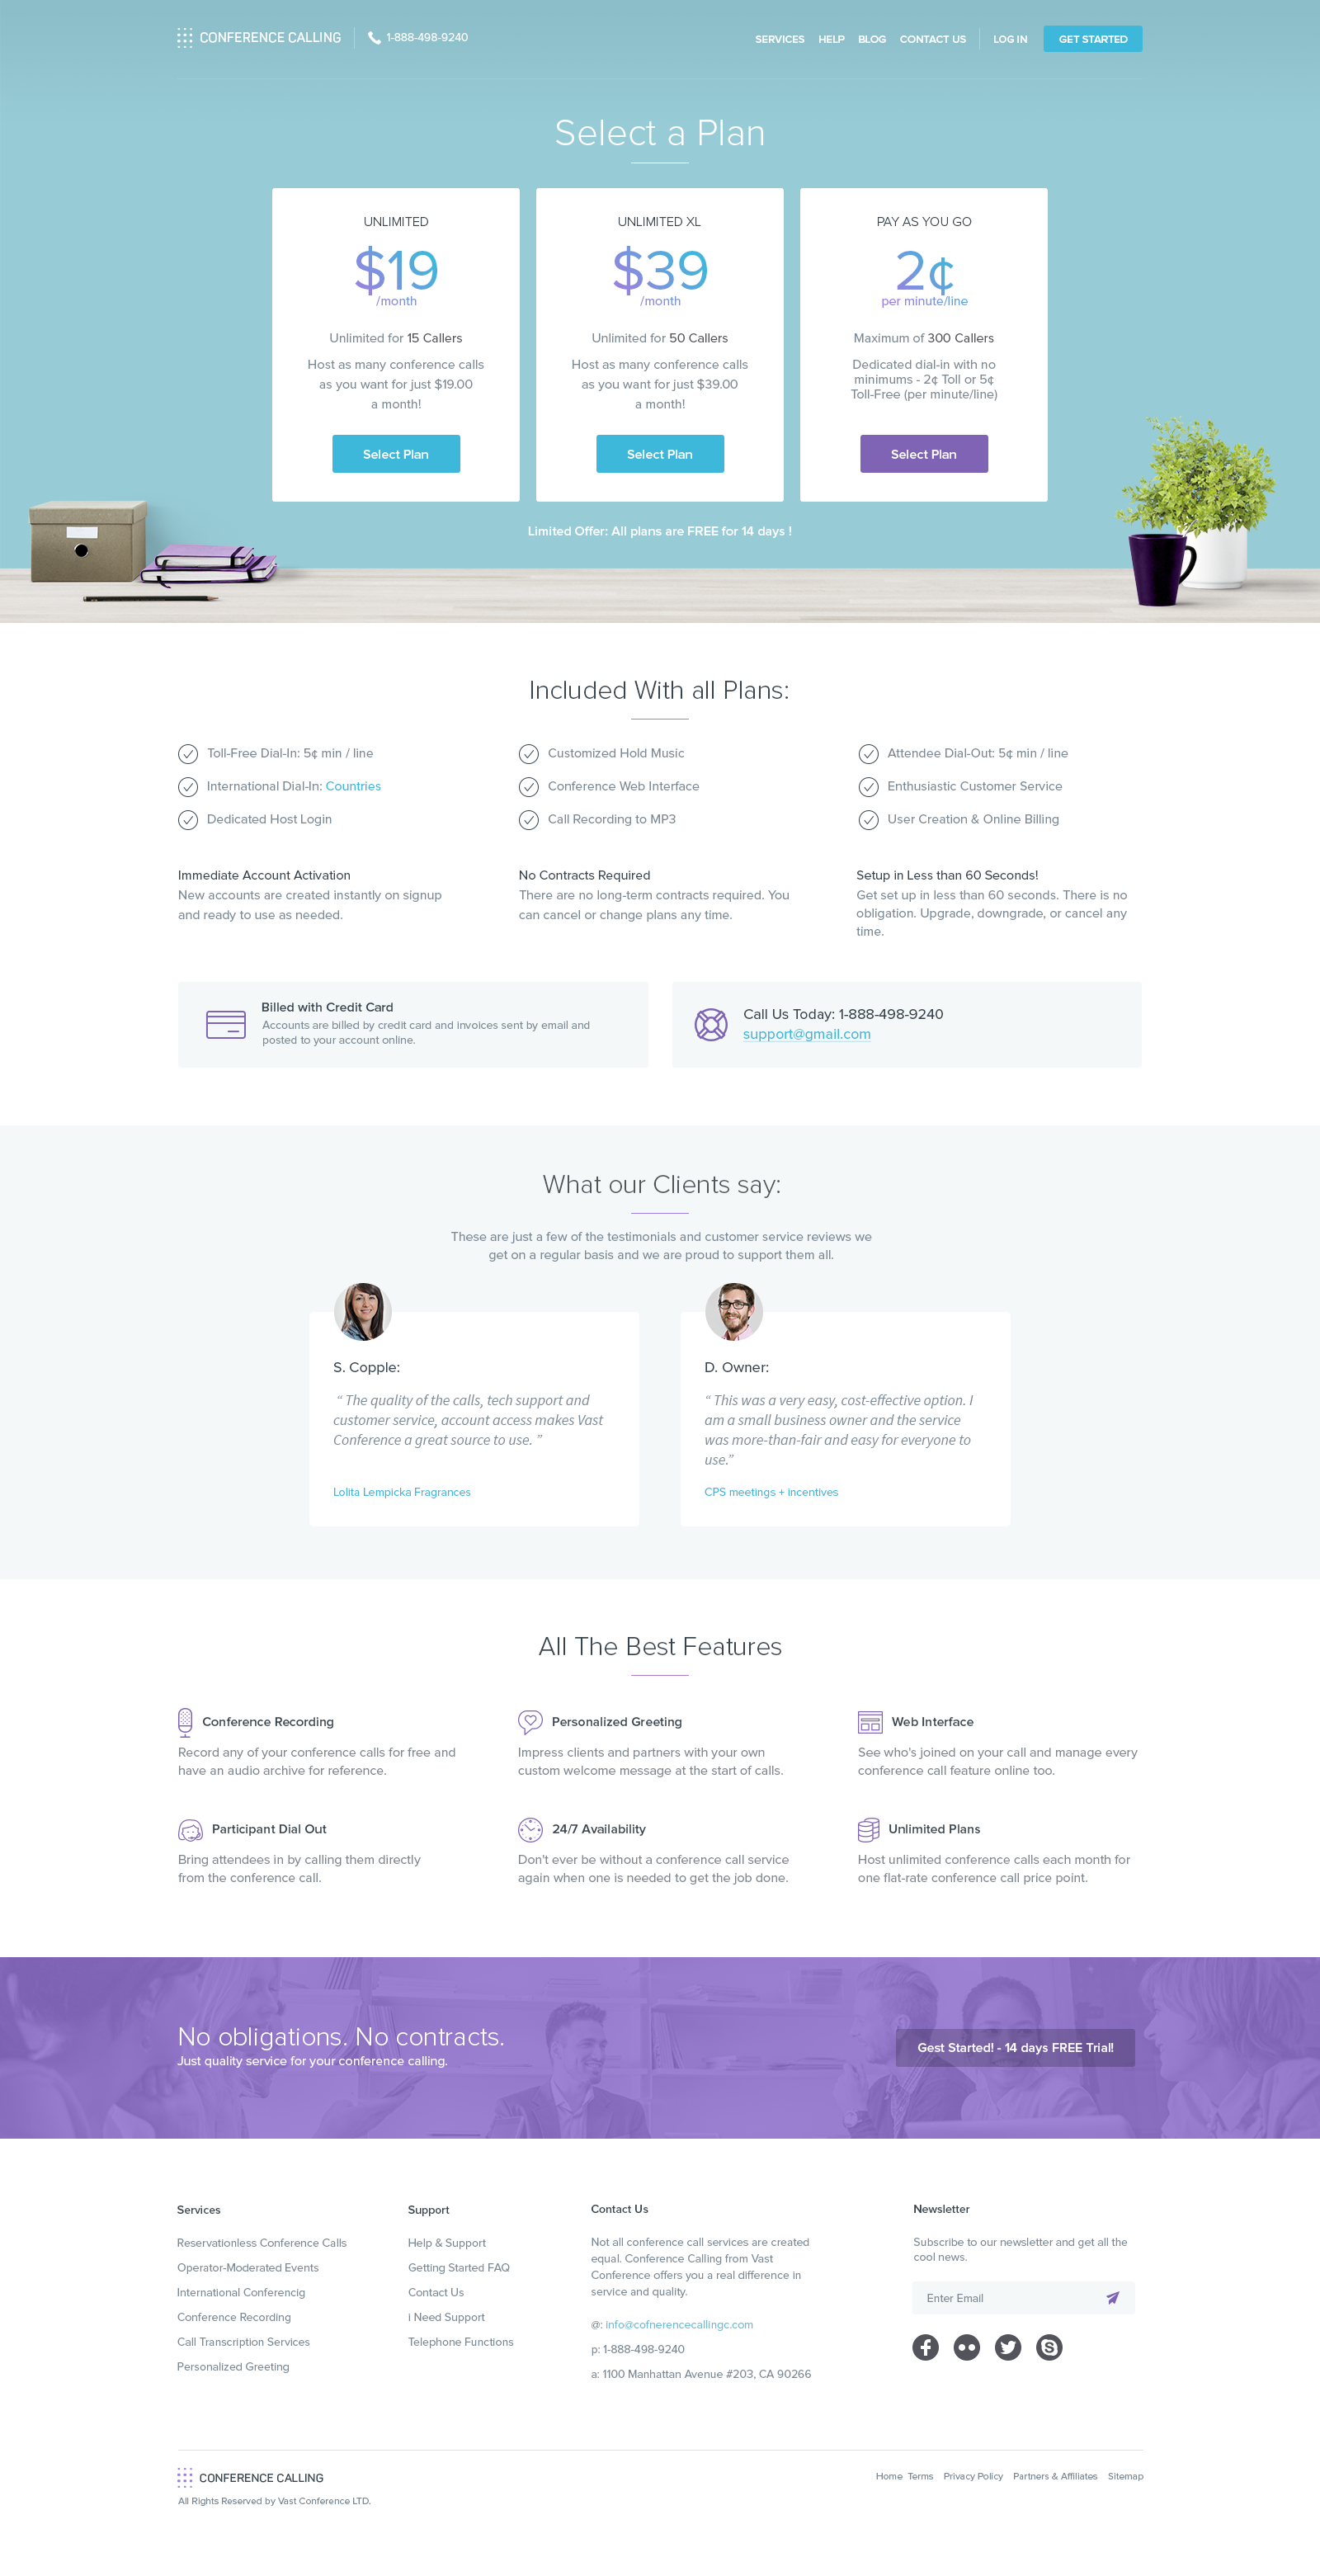 Simple Pricing Page For Conference Calling Web Design Pricing Web Design Quotes Web Design